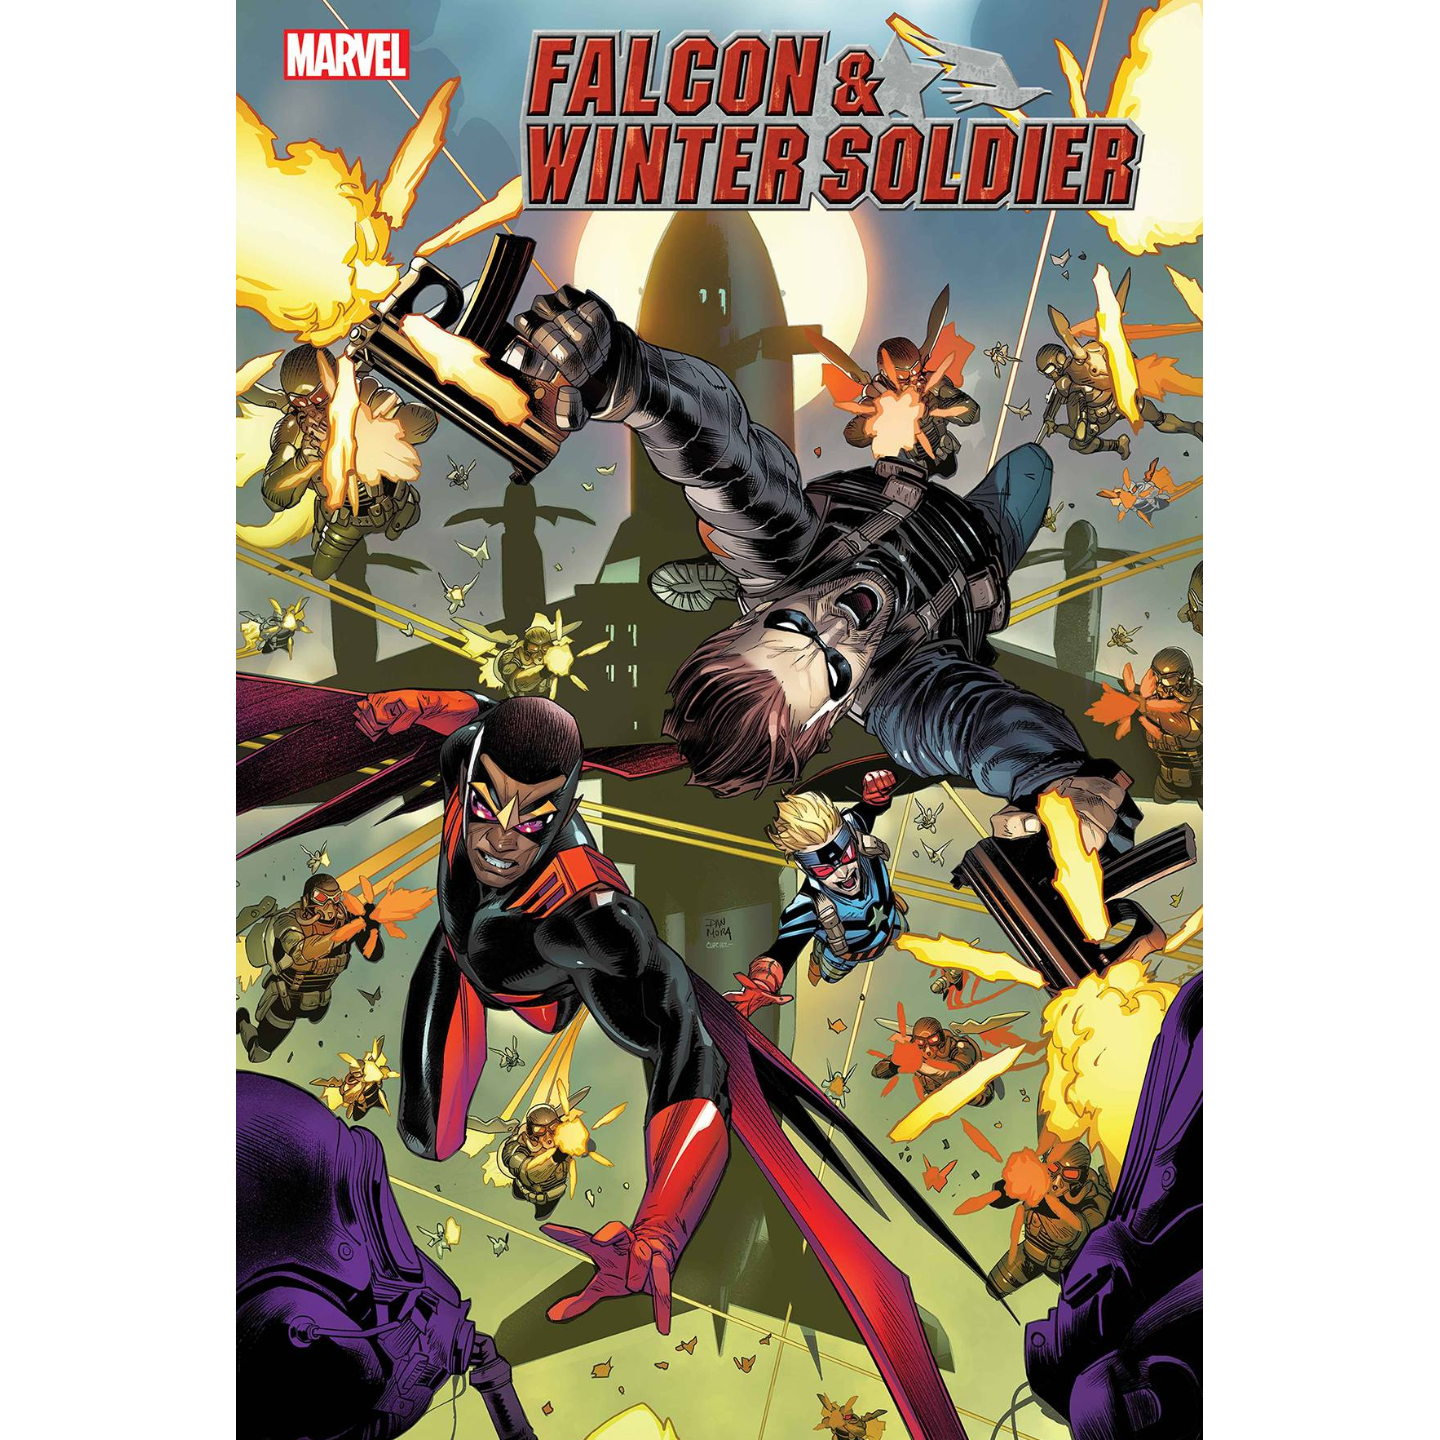 FALCON & WINTER SOLDIER #4 (OF 5)